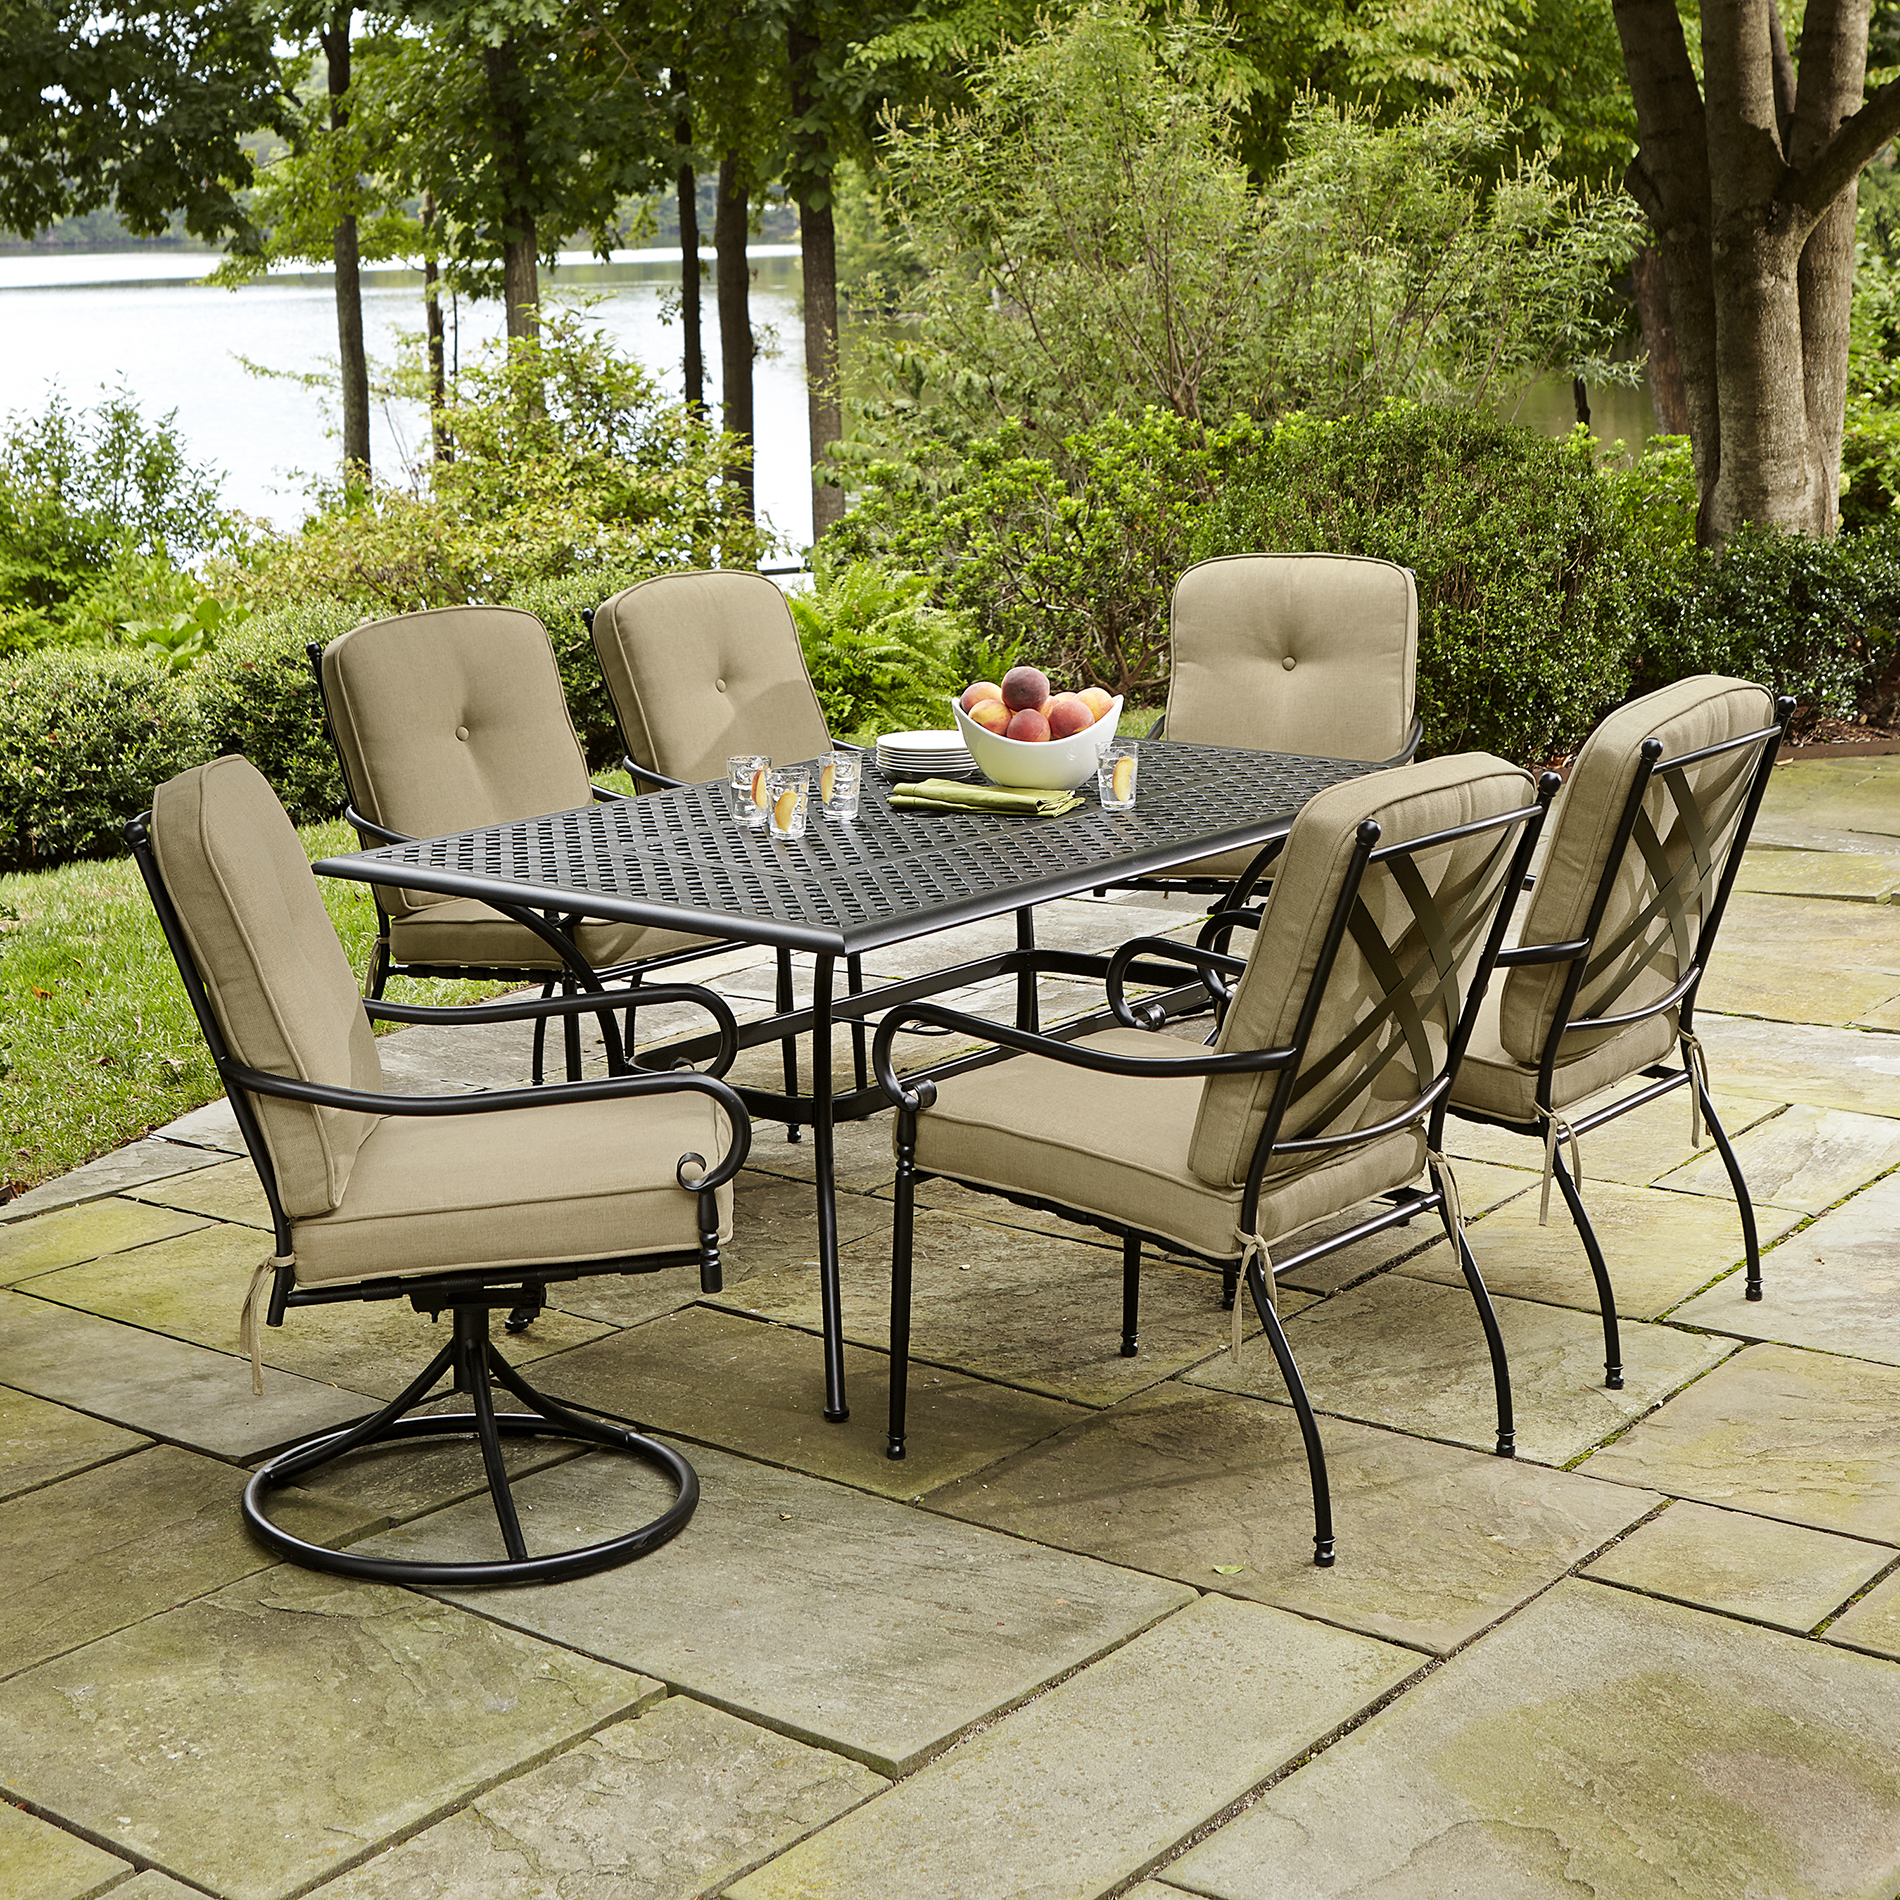 Jaclyn Smith Patio Furniture Clearance